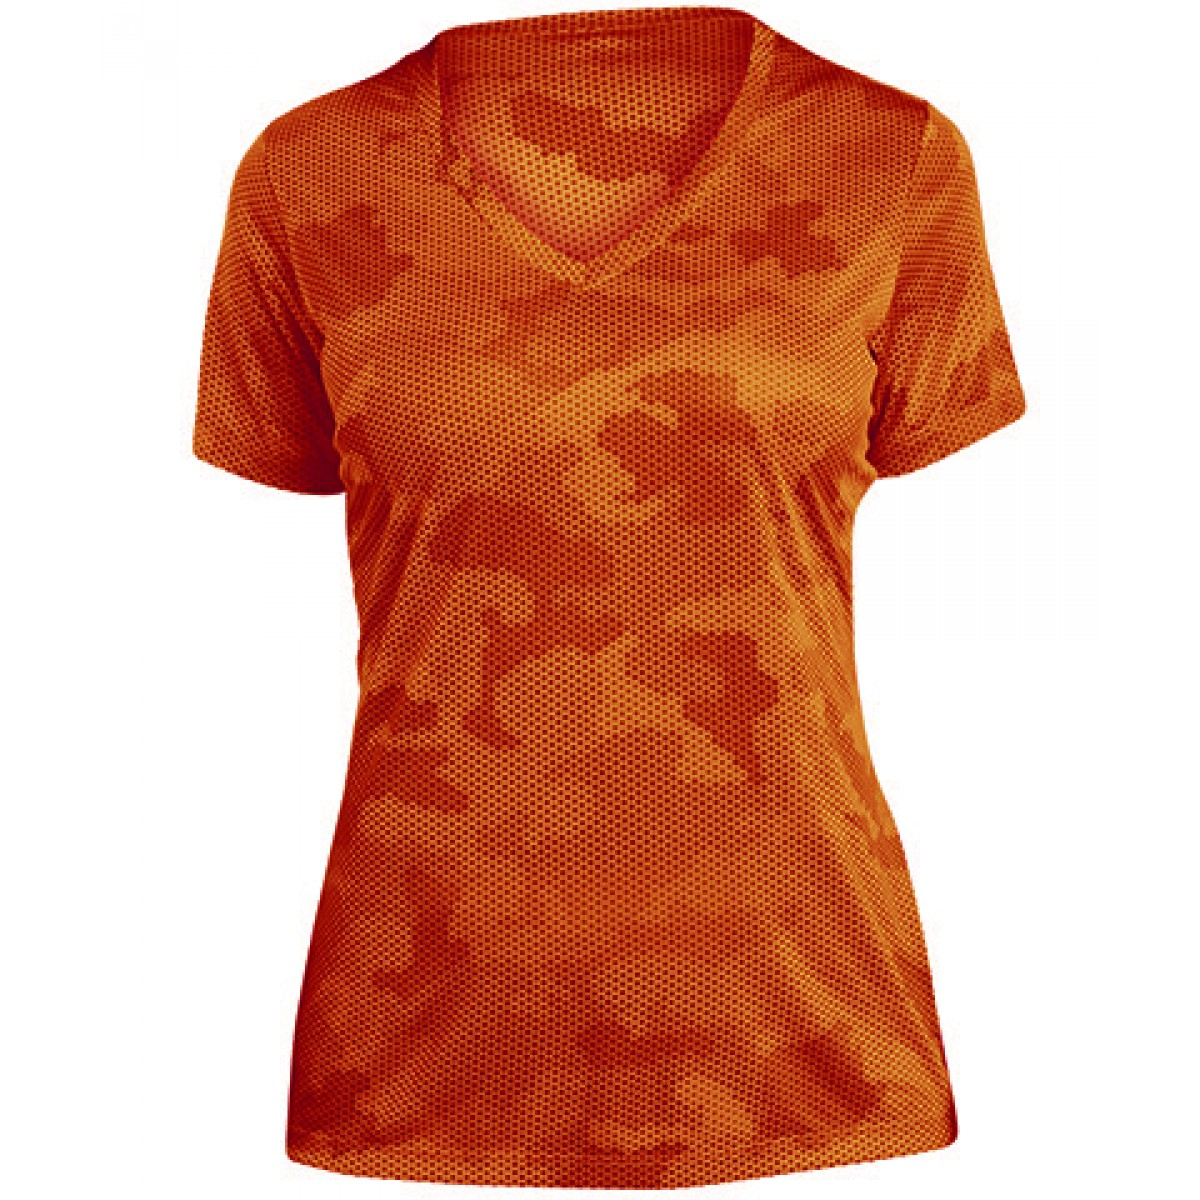 Ladies CamoHex V-Neck Tee-Orange-M